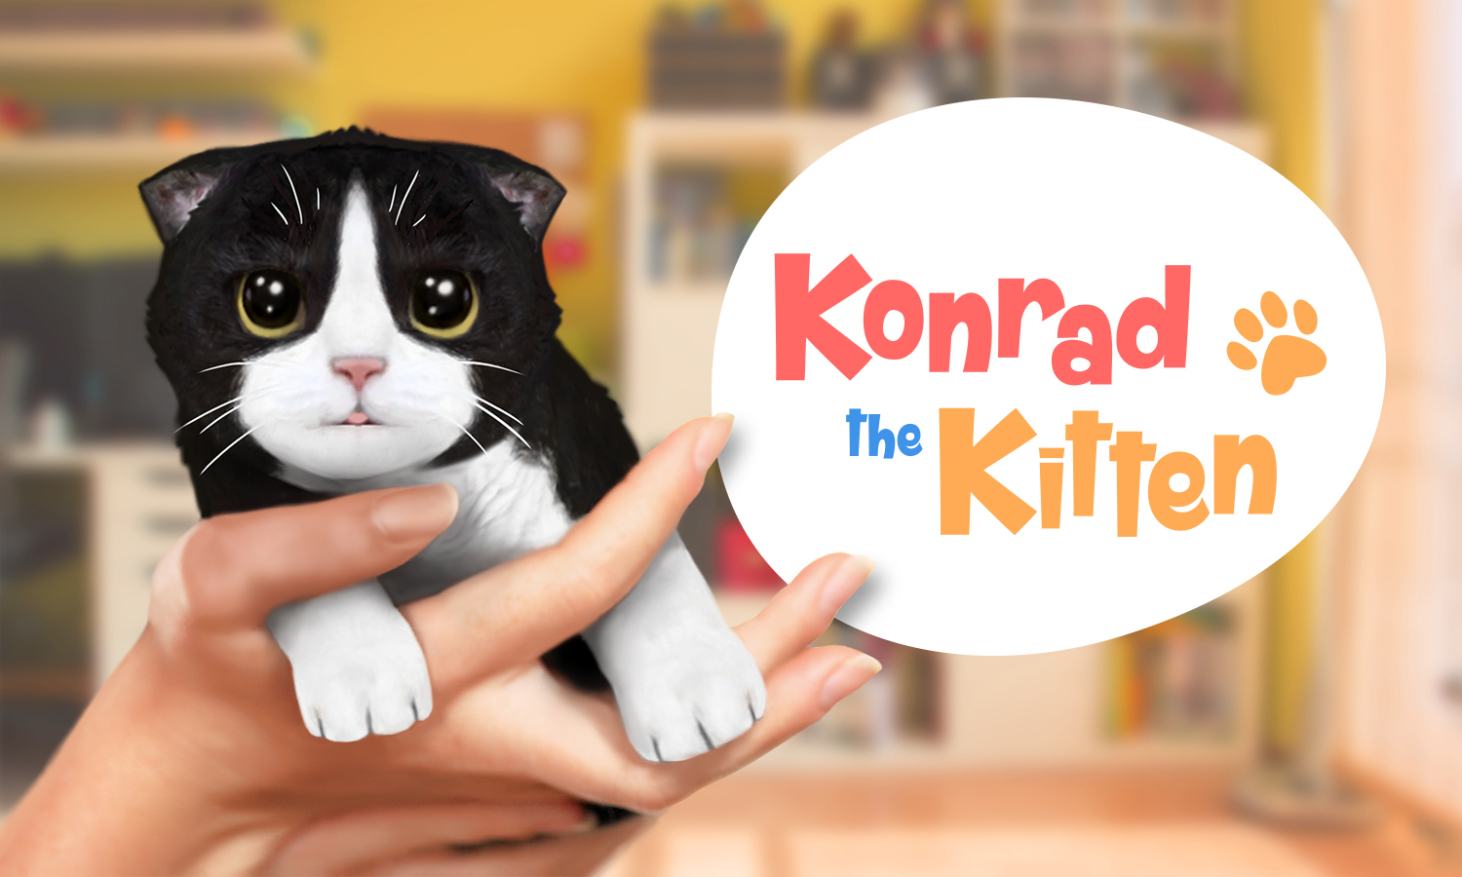 konrad-the-kitten-logo.png